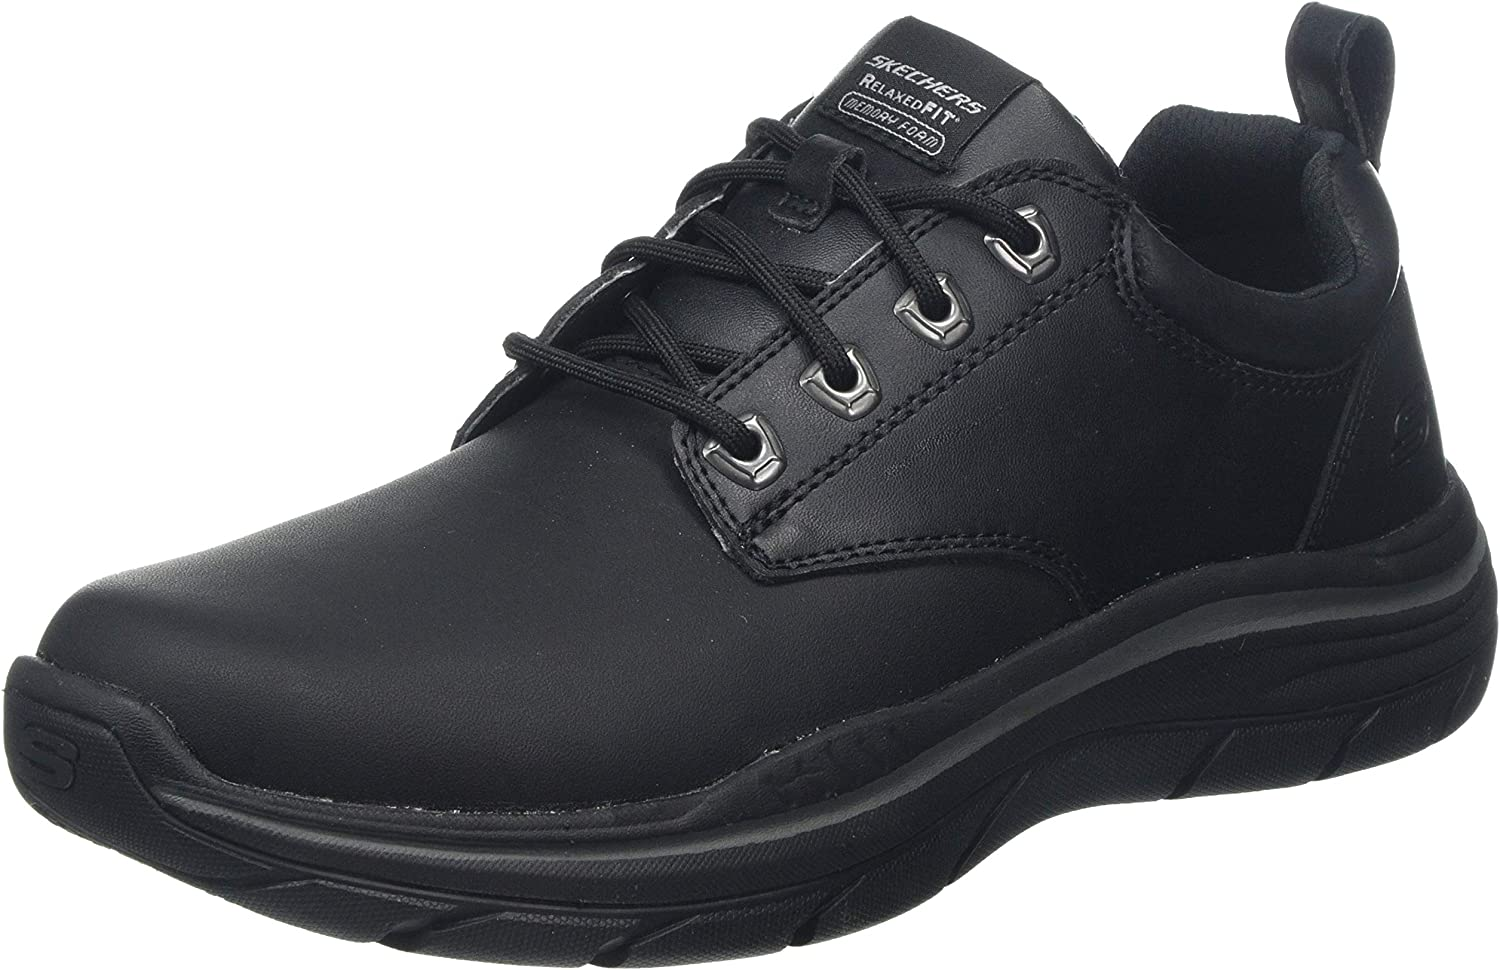 Skechers Men's Expected 2.0 Leather Lace Up Oxford